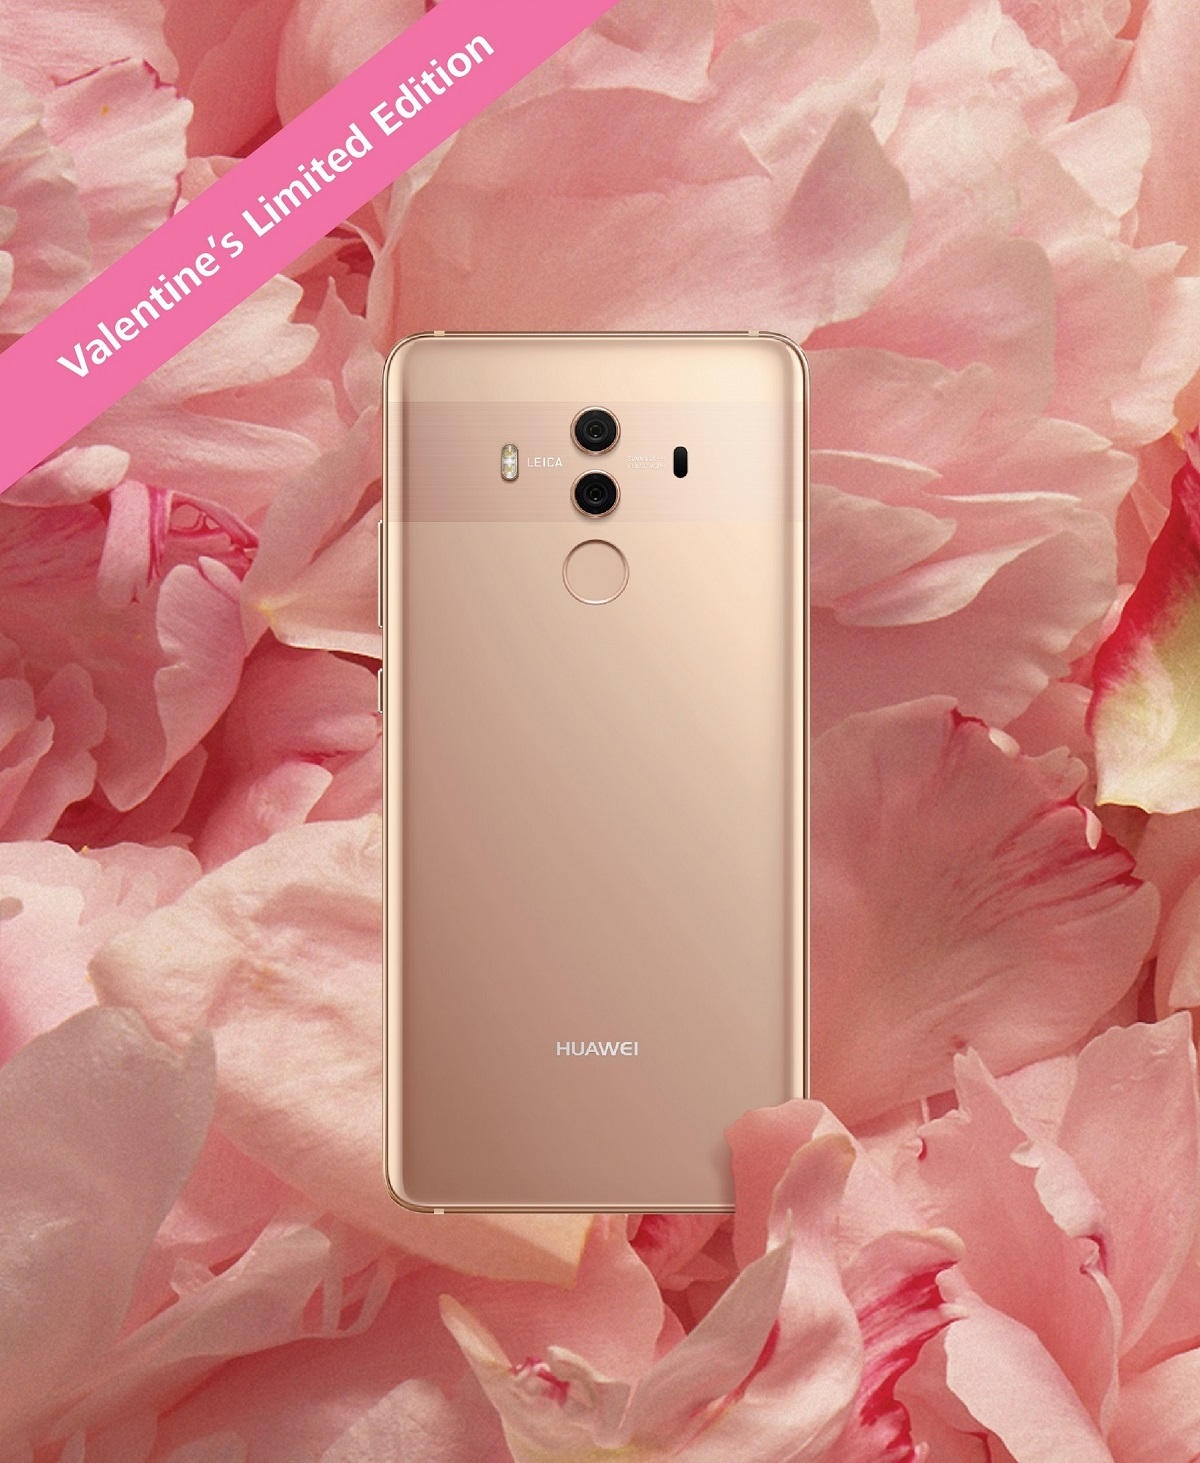 Huawei Mate 10 Pro Finally Up For Pre-order In US